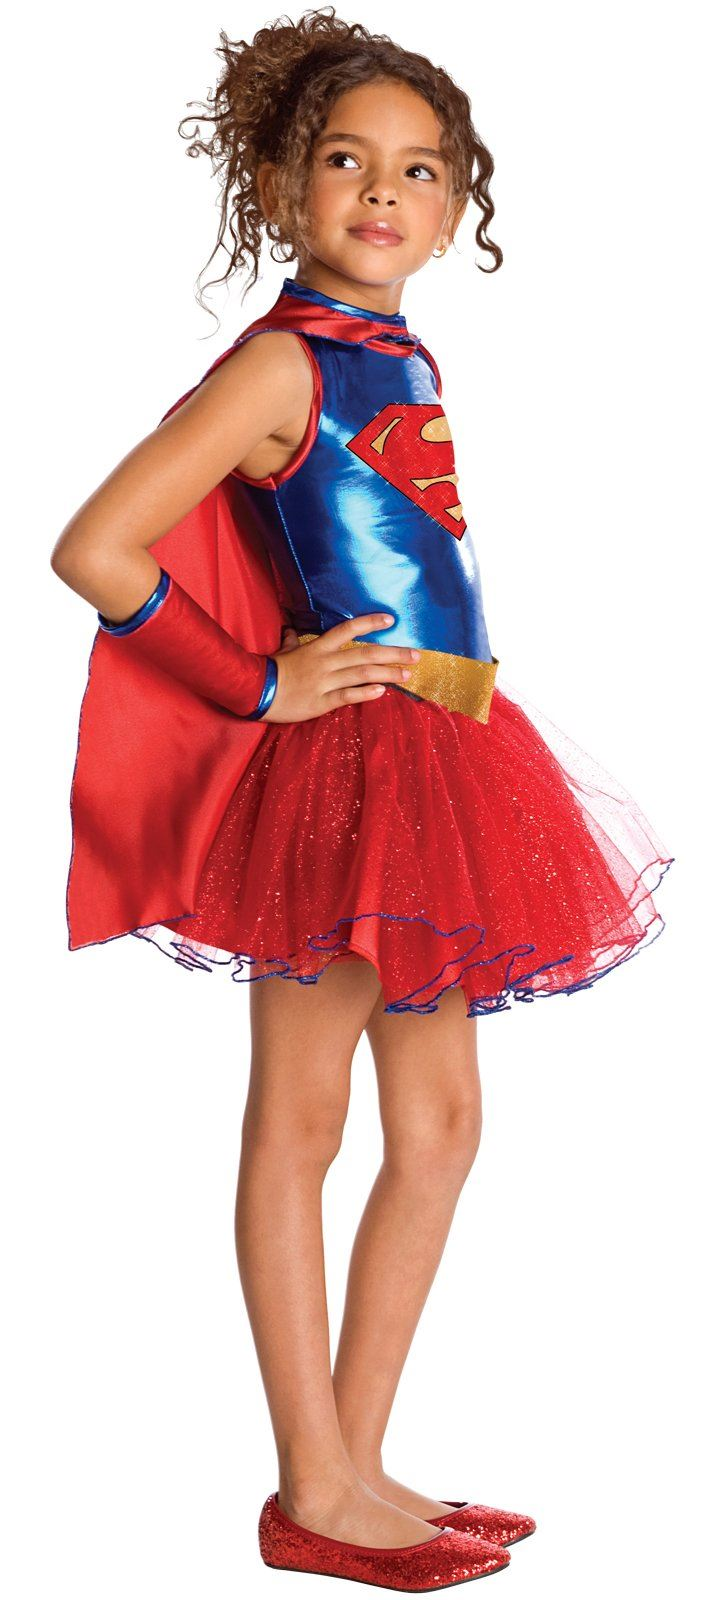 Supergirl Deluxe Girl Costume - Kids Crawler Little Spider Girl Costume $41.99 The Costume Land